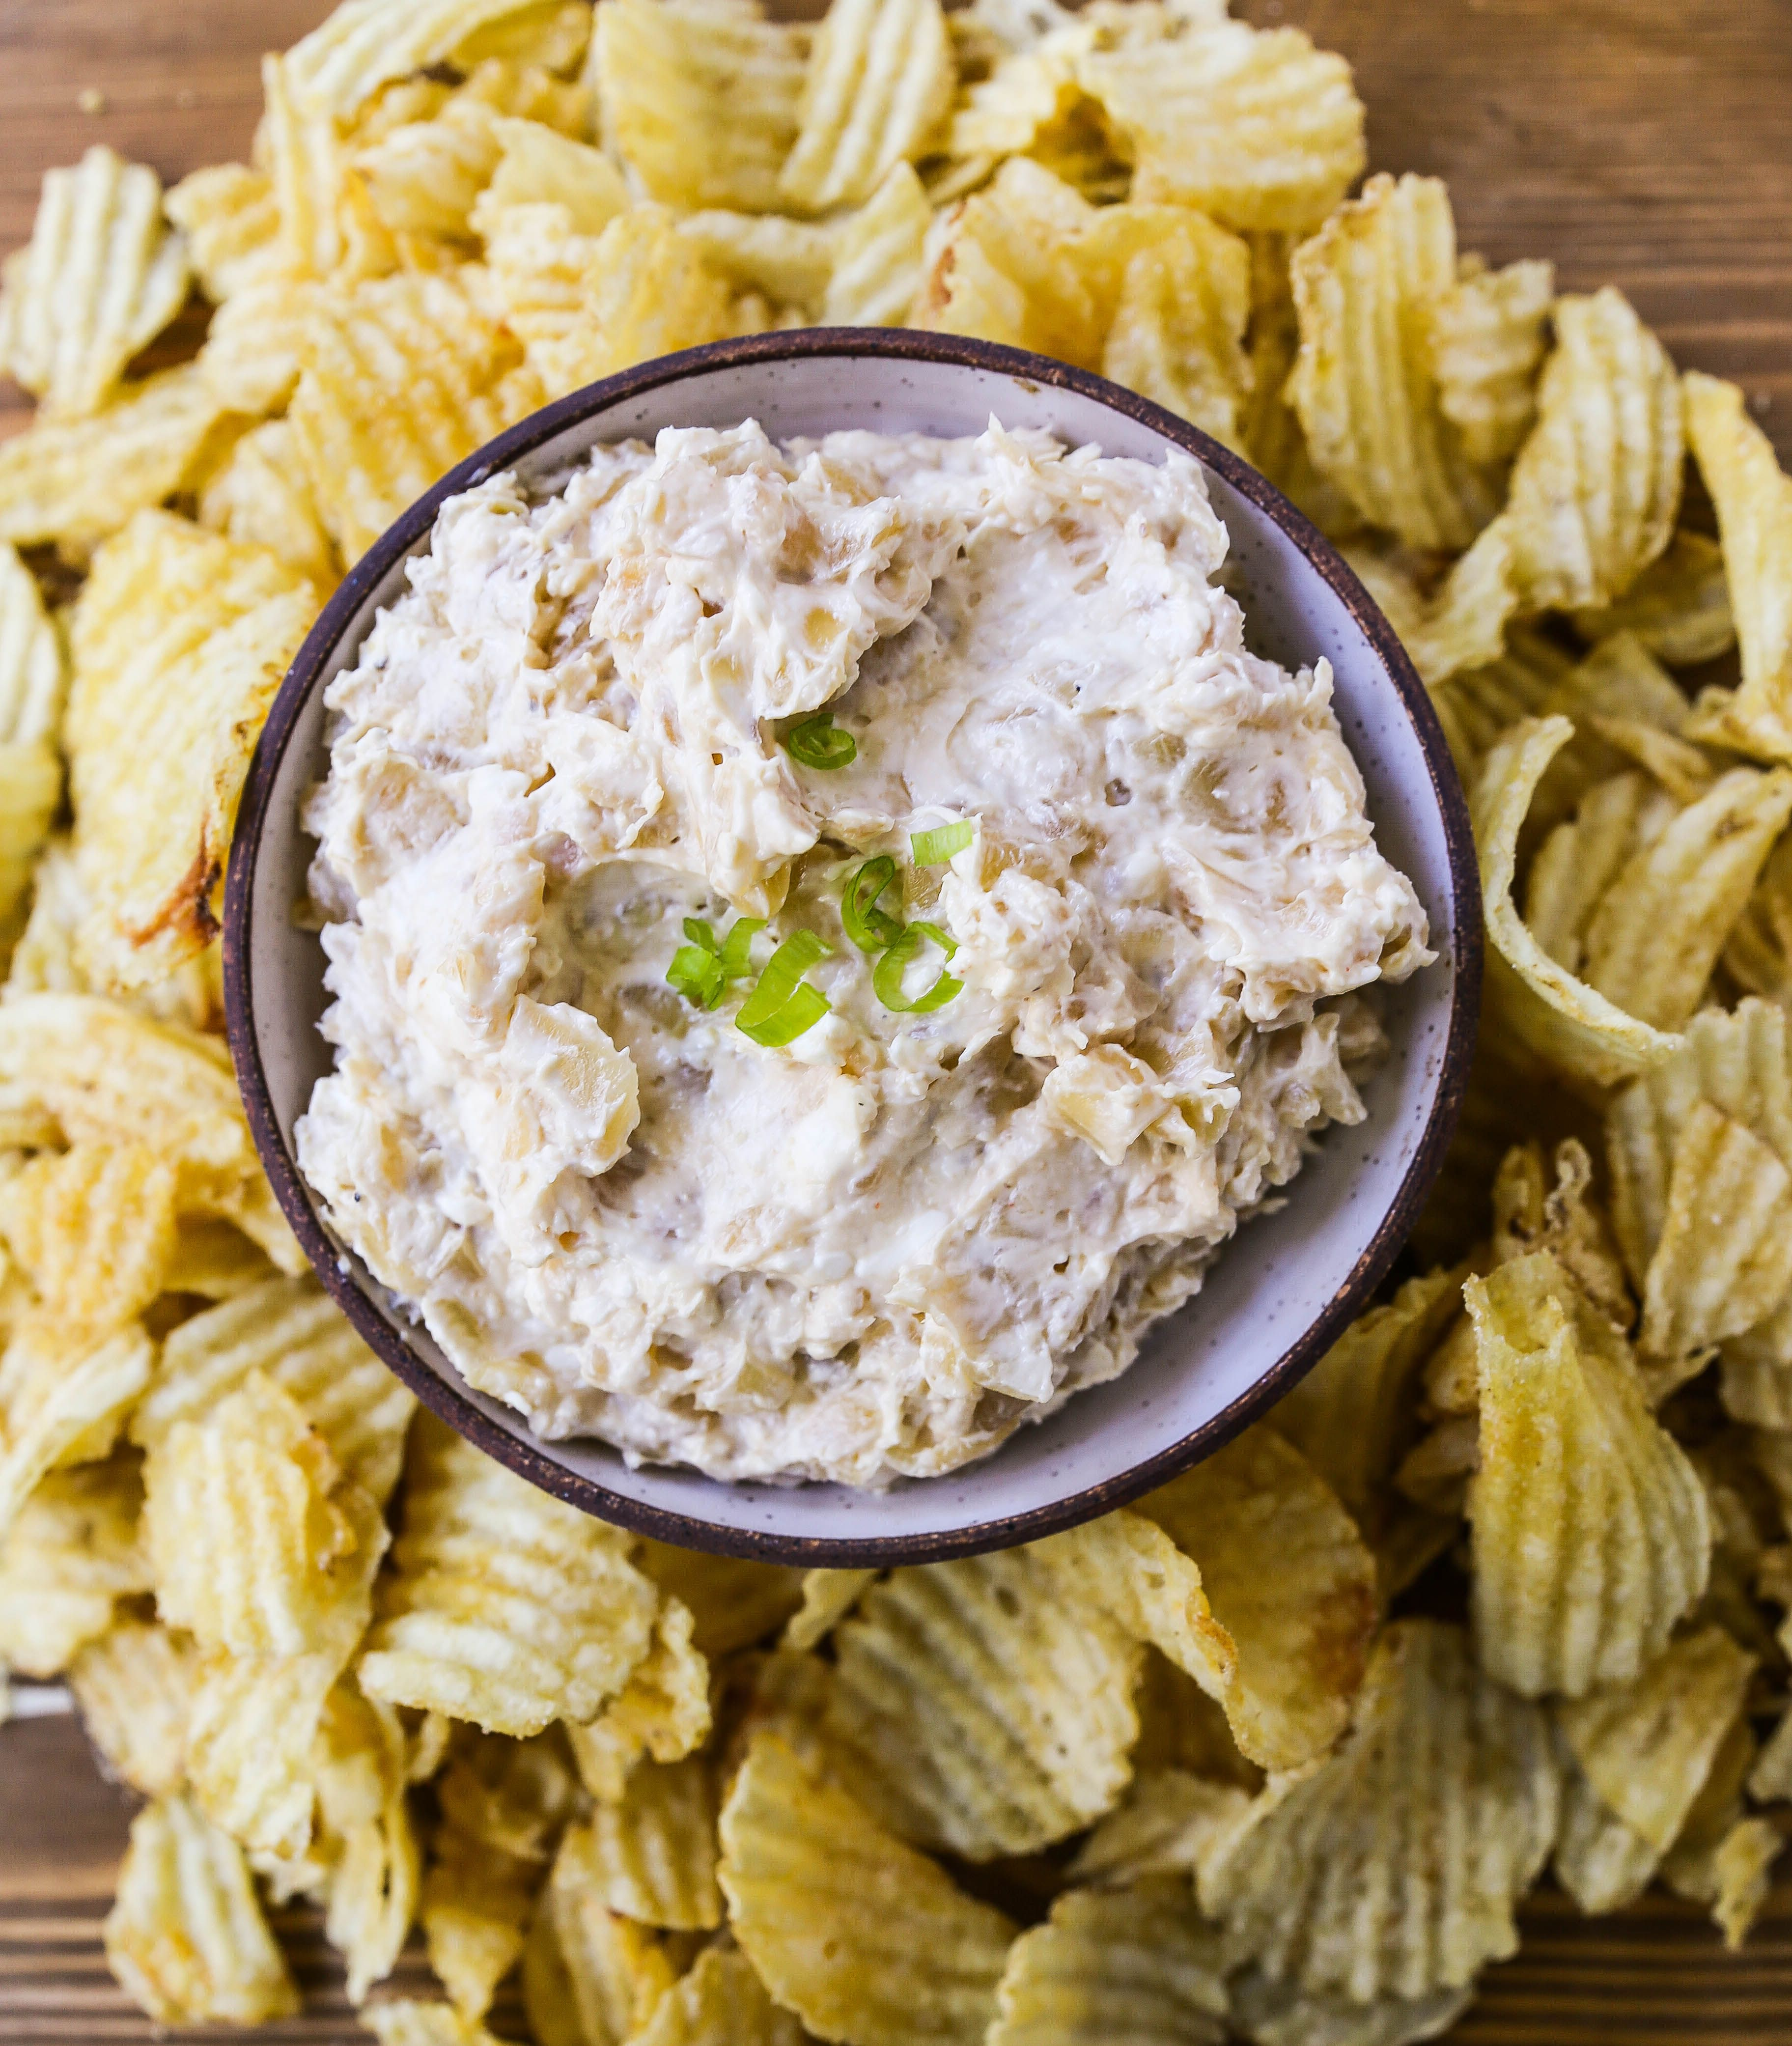 French Onion Dip Recipe The Best Homemade French Onion Dip Made With Caramelized Onions Sour Cream French Onion Dip Recipe Onion Dip Recipe French Onion Dip